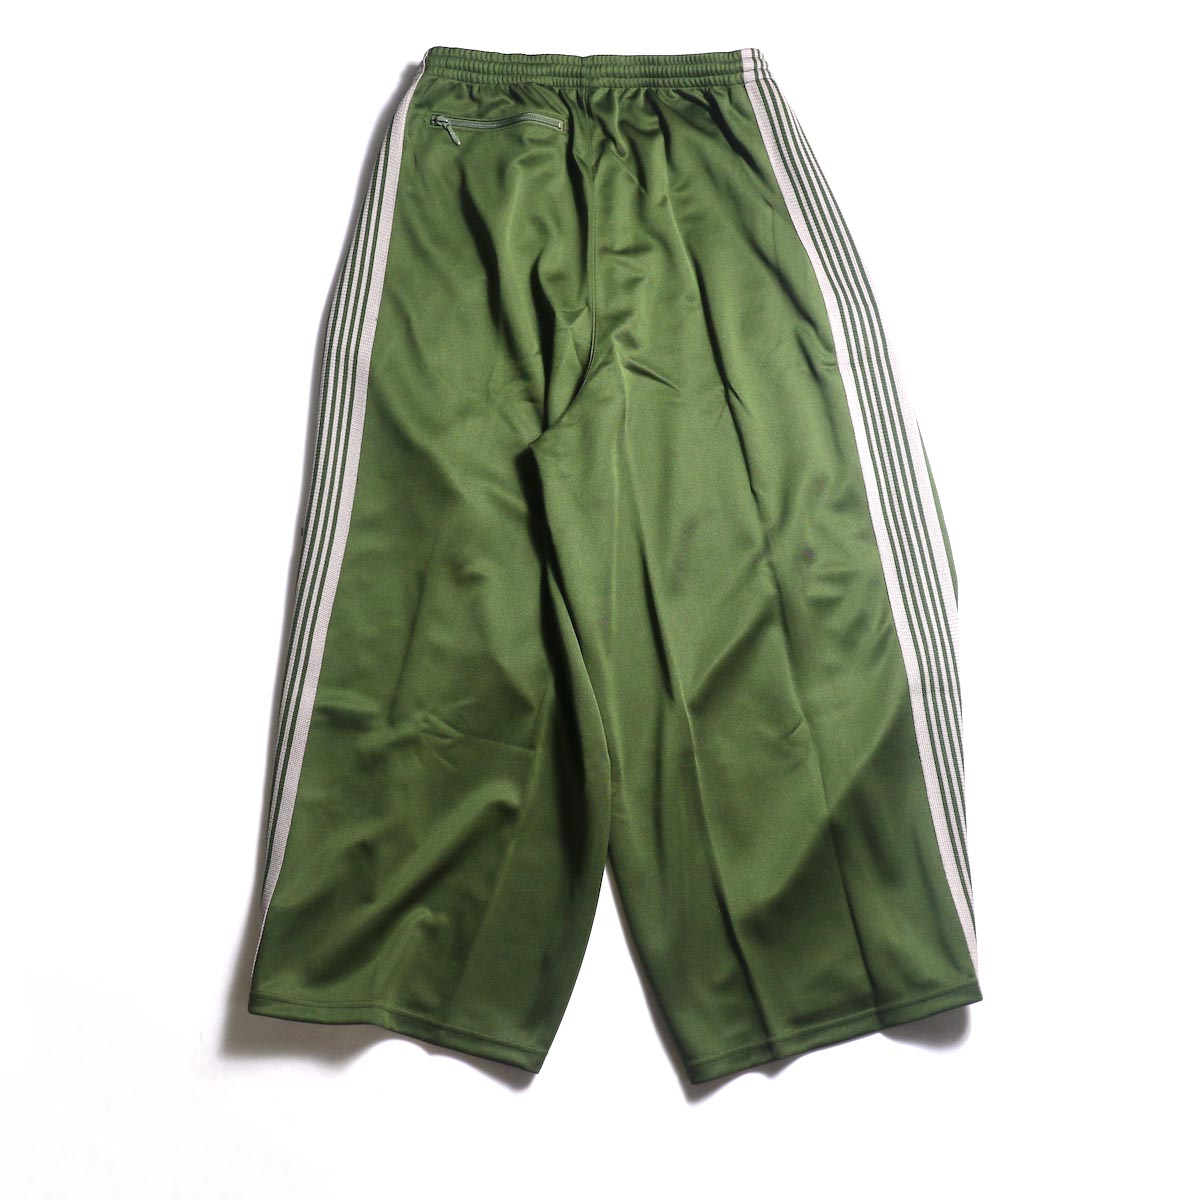 Needles / H.D. TRACK PANT - POLY SMOOTH (Olive)背面